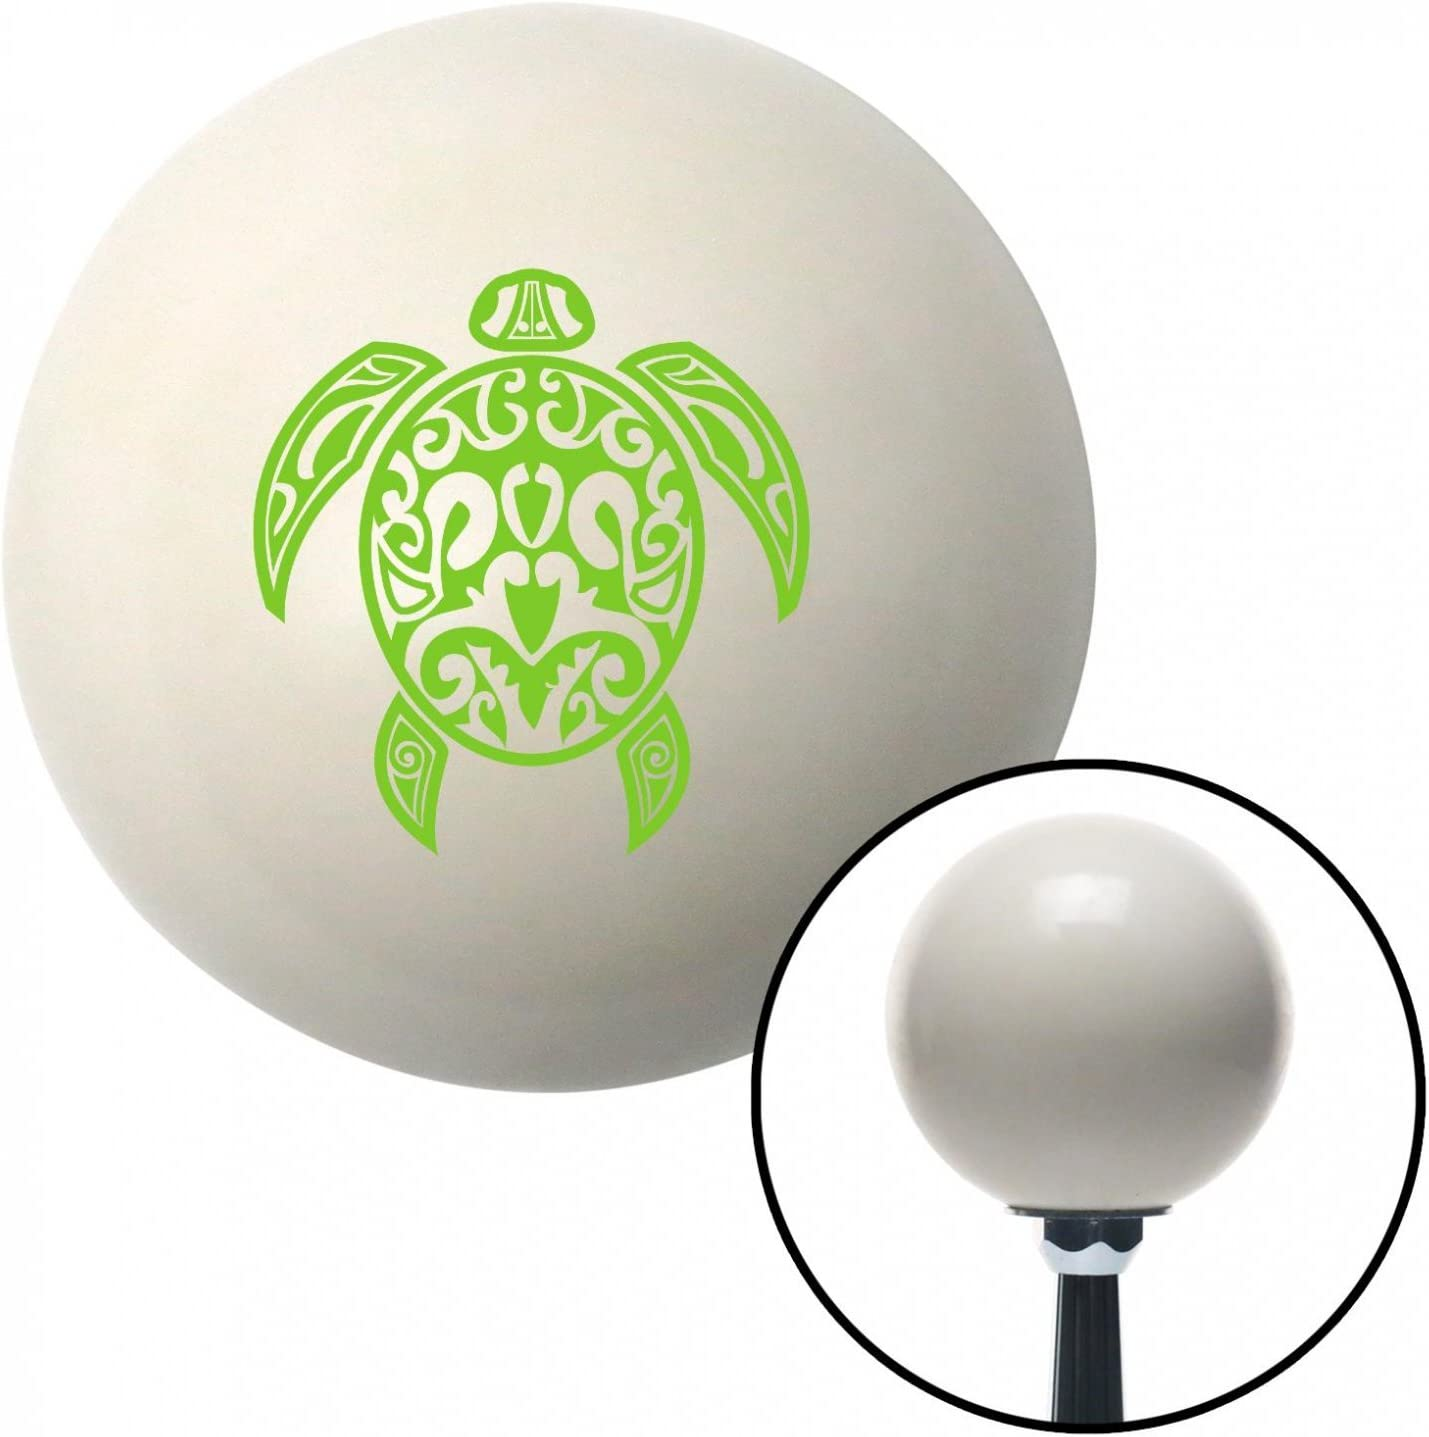 American Shifter 35264 Ivory Shift Knob with 16mm x 1.5 Insert Green Hawaiian Turtle